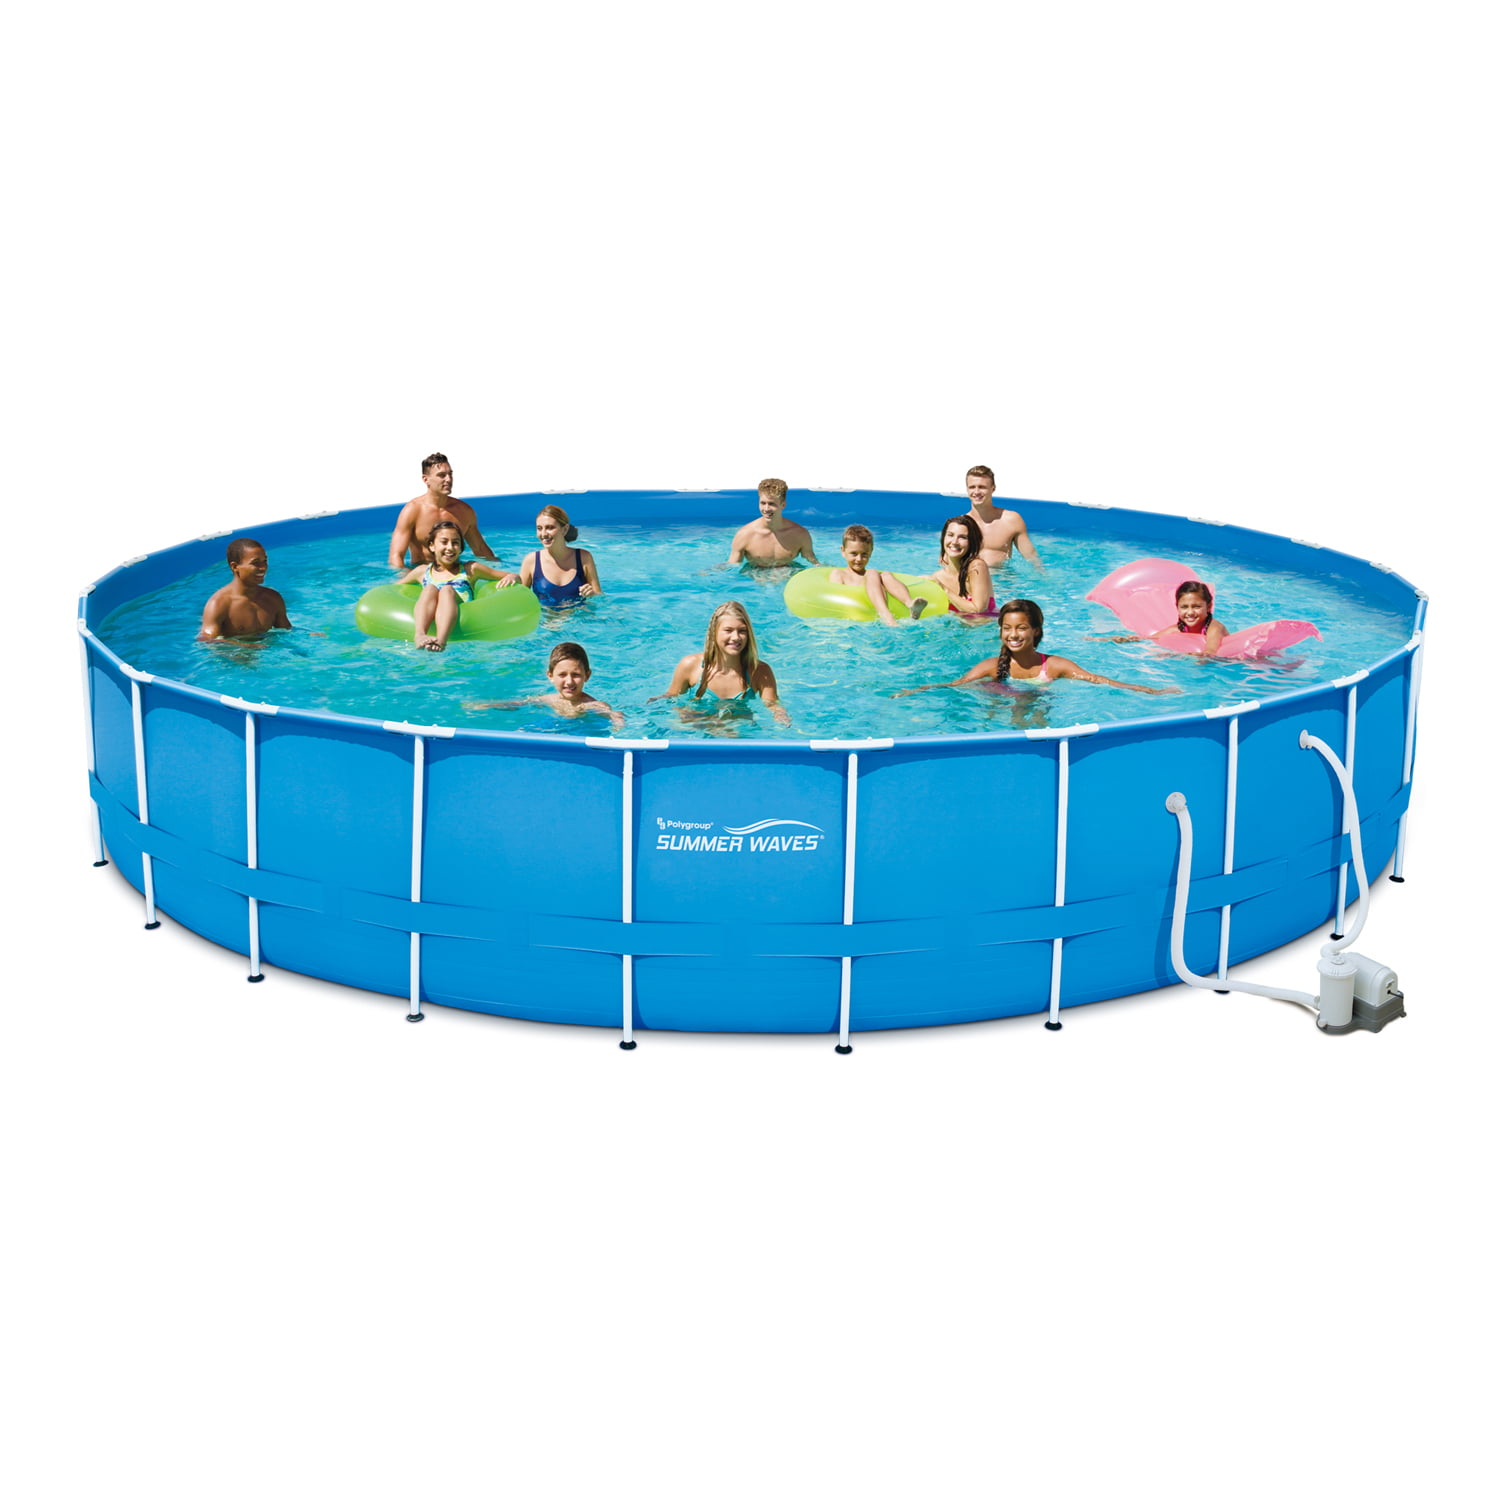 "Summer Waves 24' x 52"" Metal Frame Above Ground Swimming Pool with Filter Pump System And Deluxe Accessory Set by Polygroup"